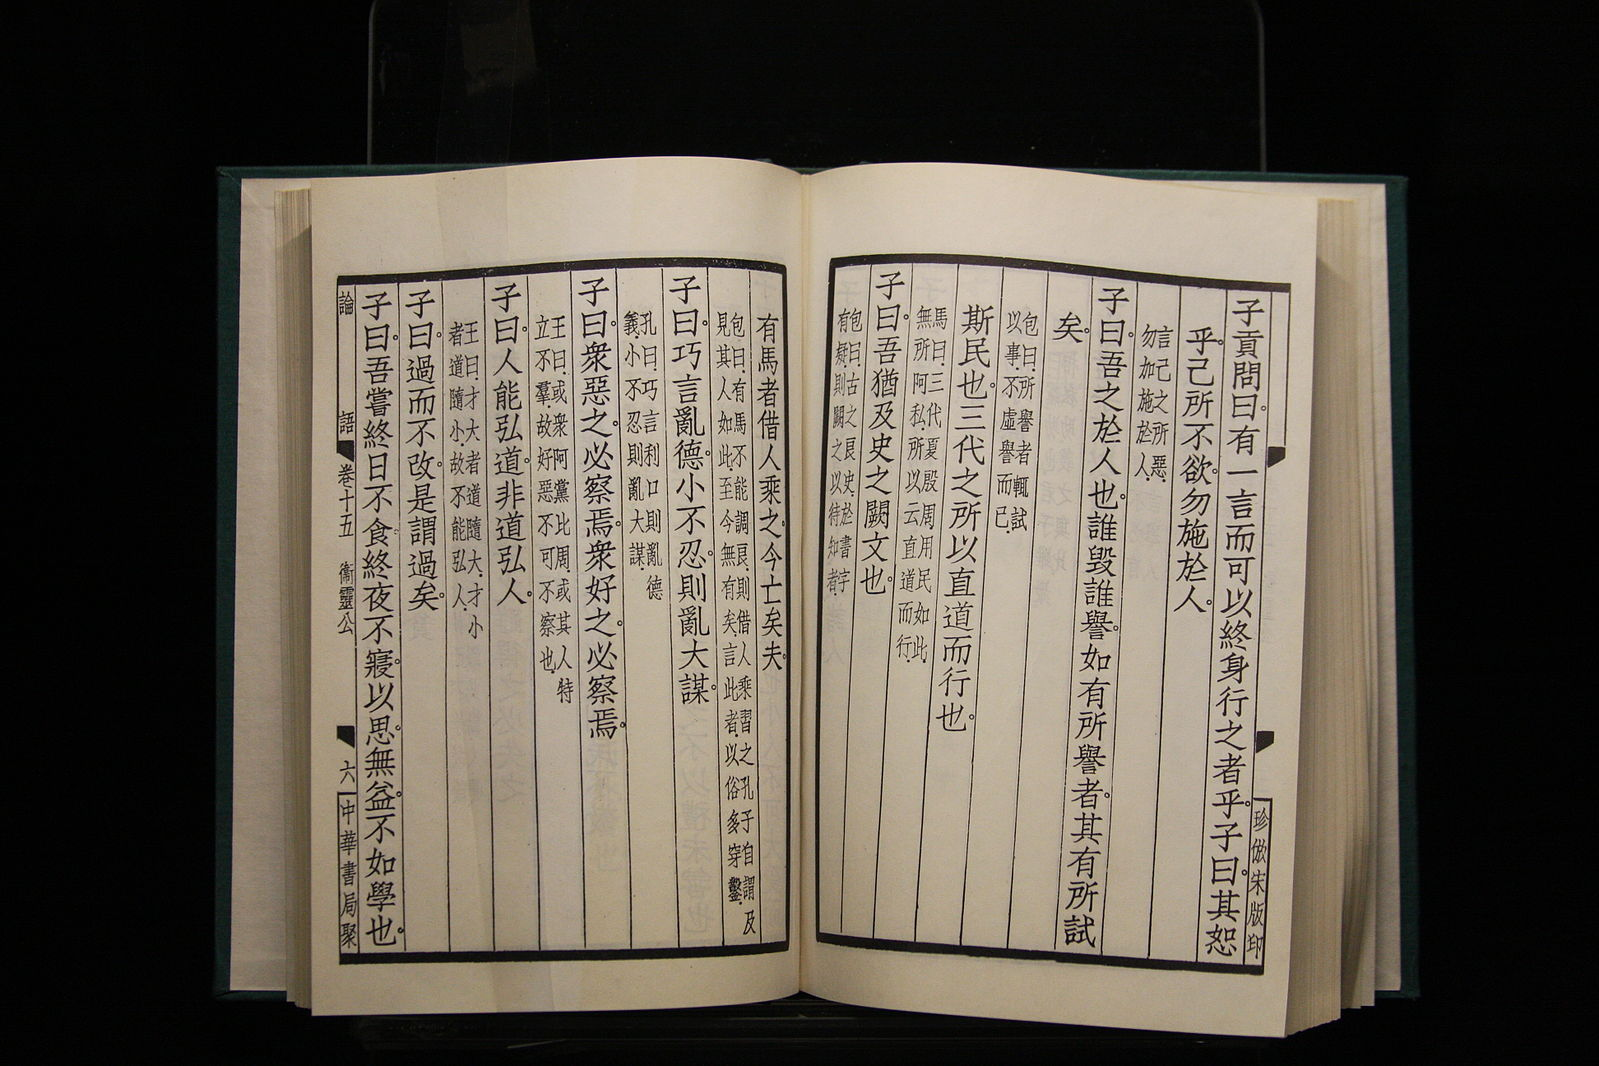 Analects by Confucius, a must read for all civil service examinations.  [Bjoertvedt, Östasiatiska Museet, Stockholm]